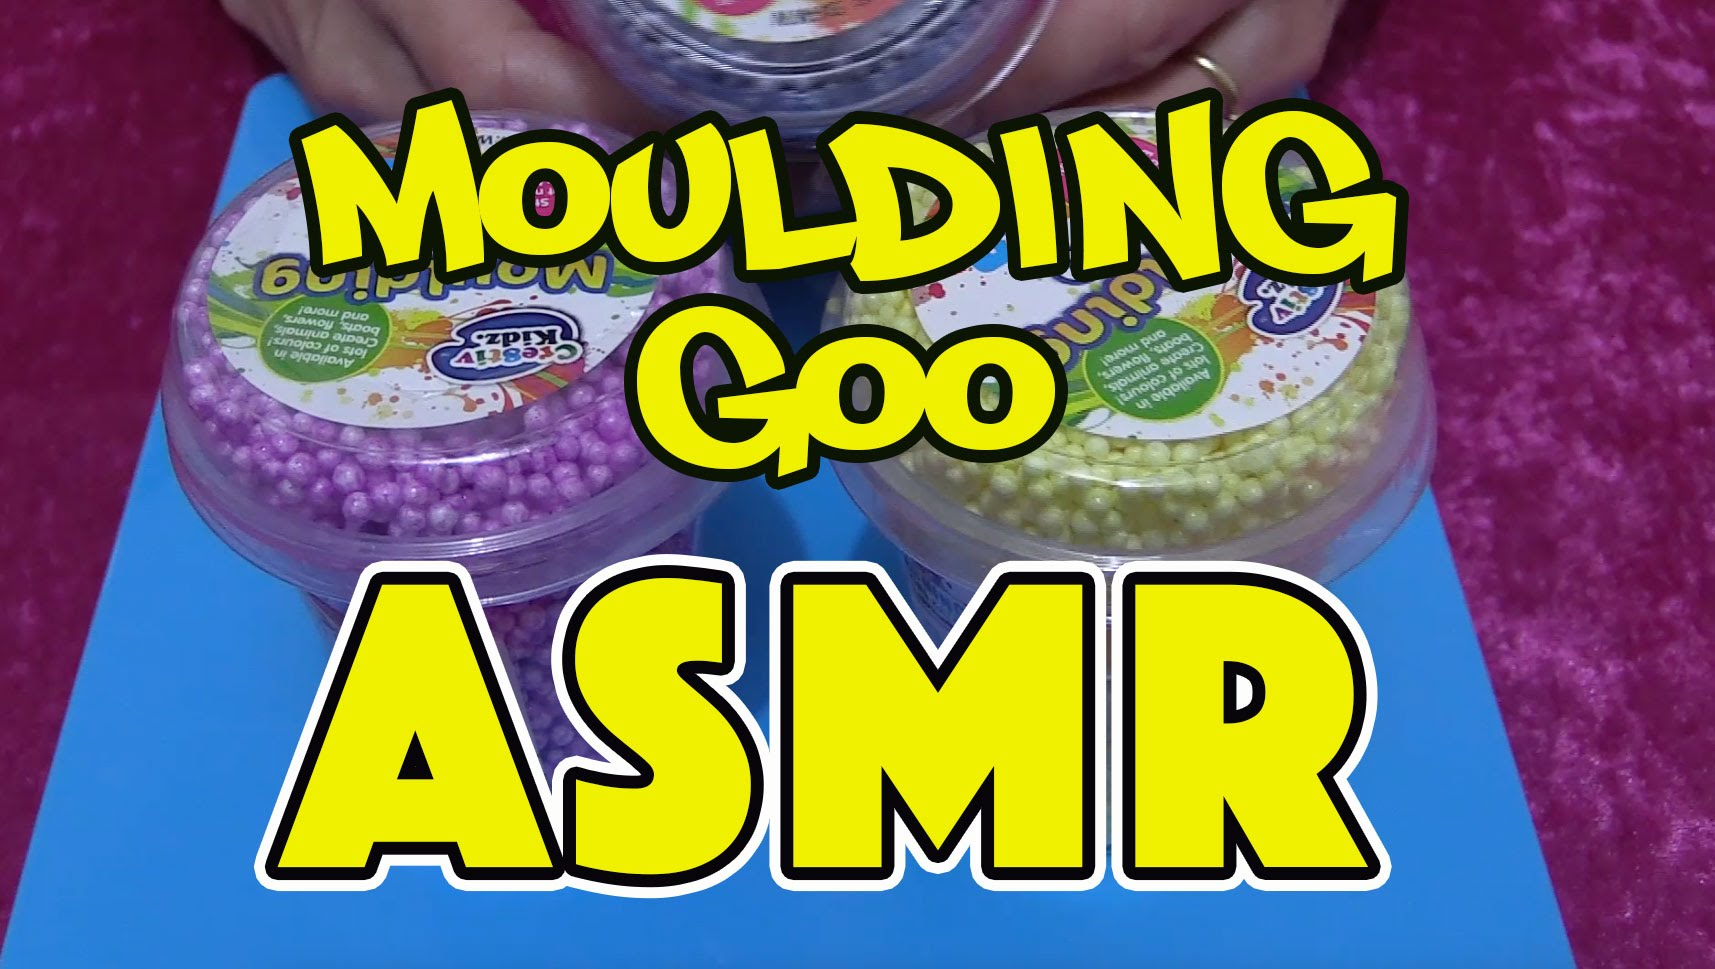 ASMR: 30 Days of Tingles – DAY 16 Moulding Goo